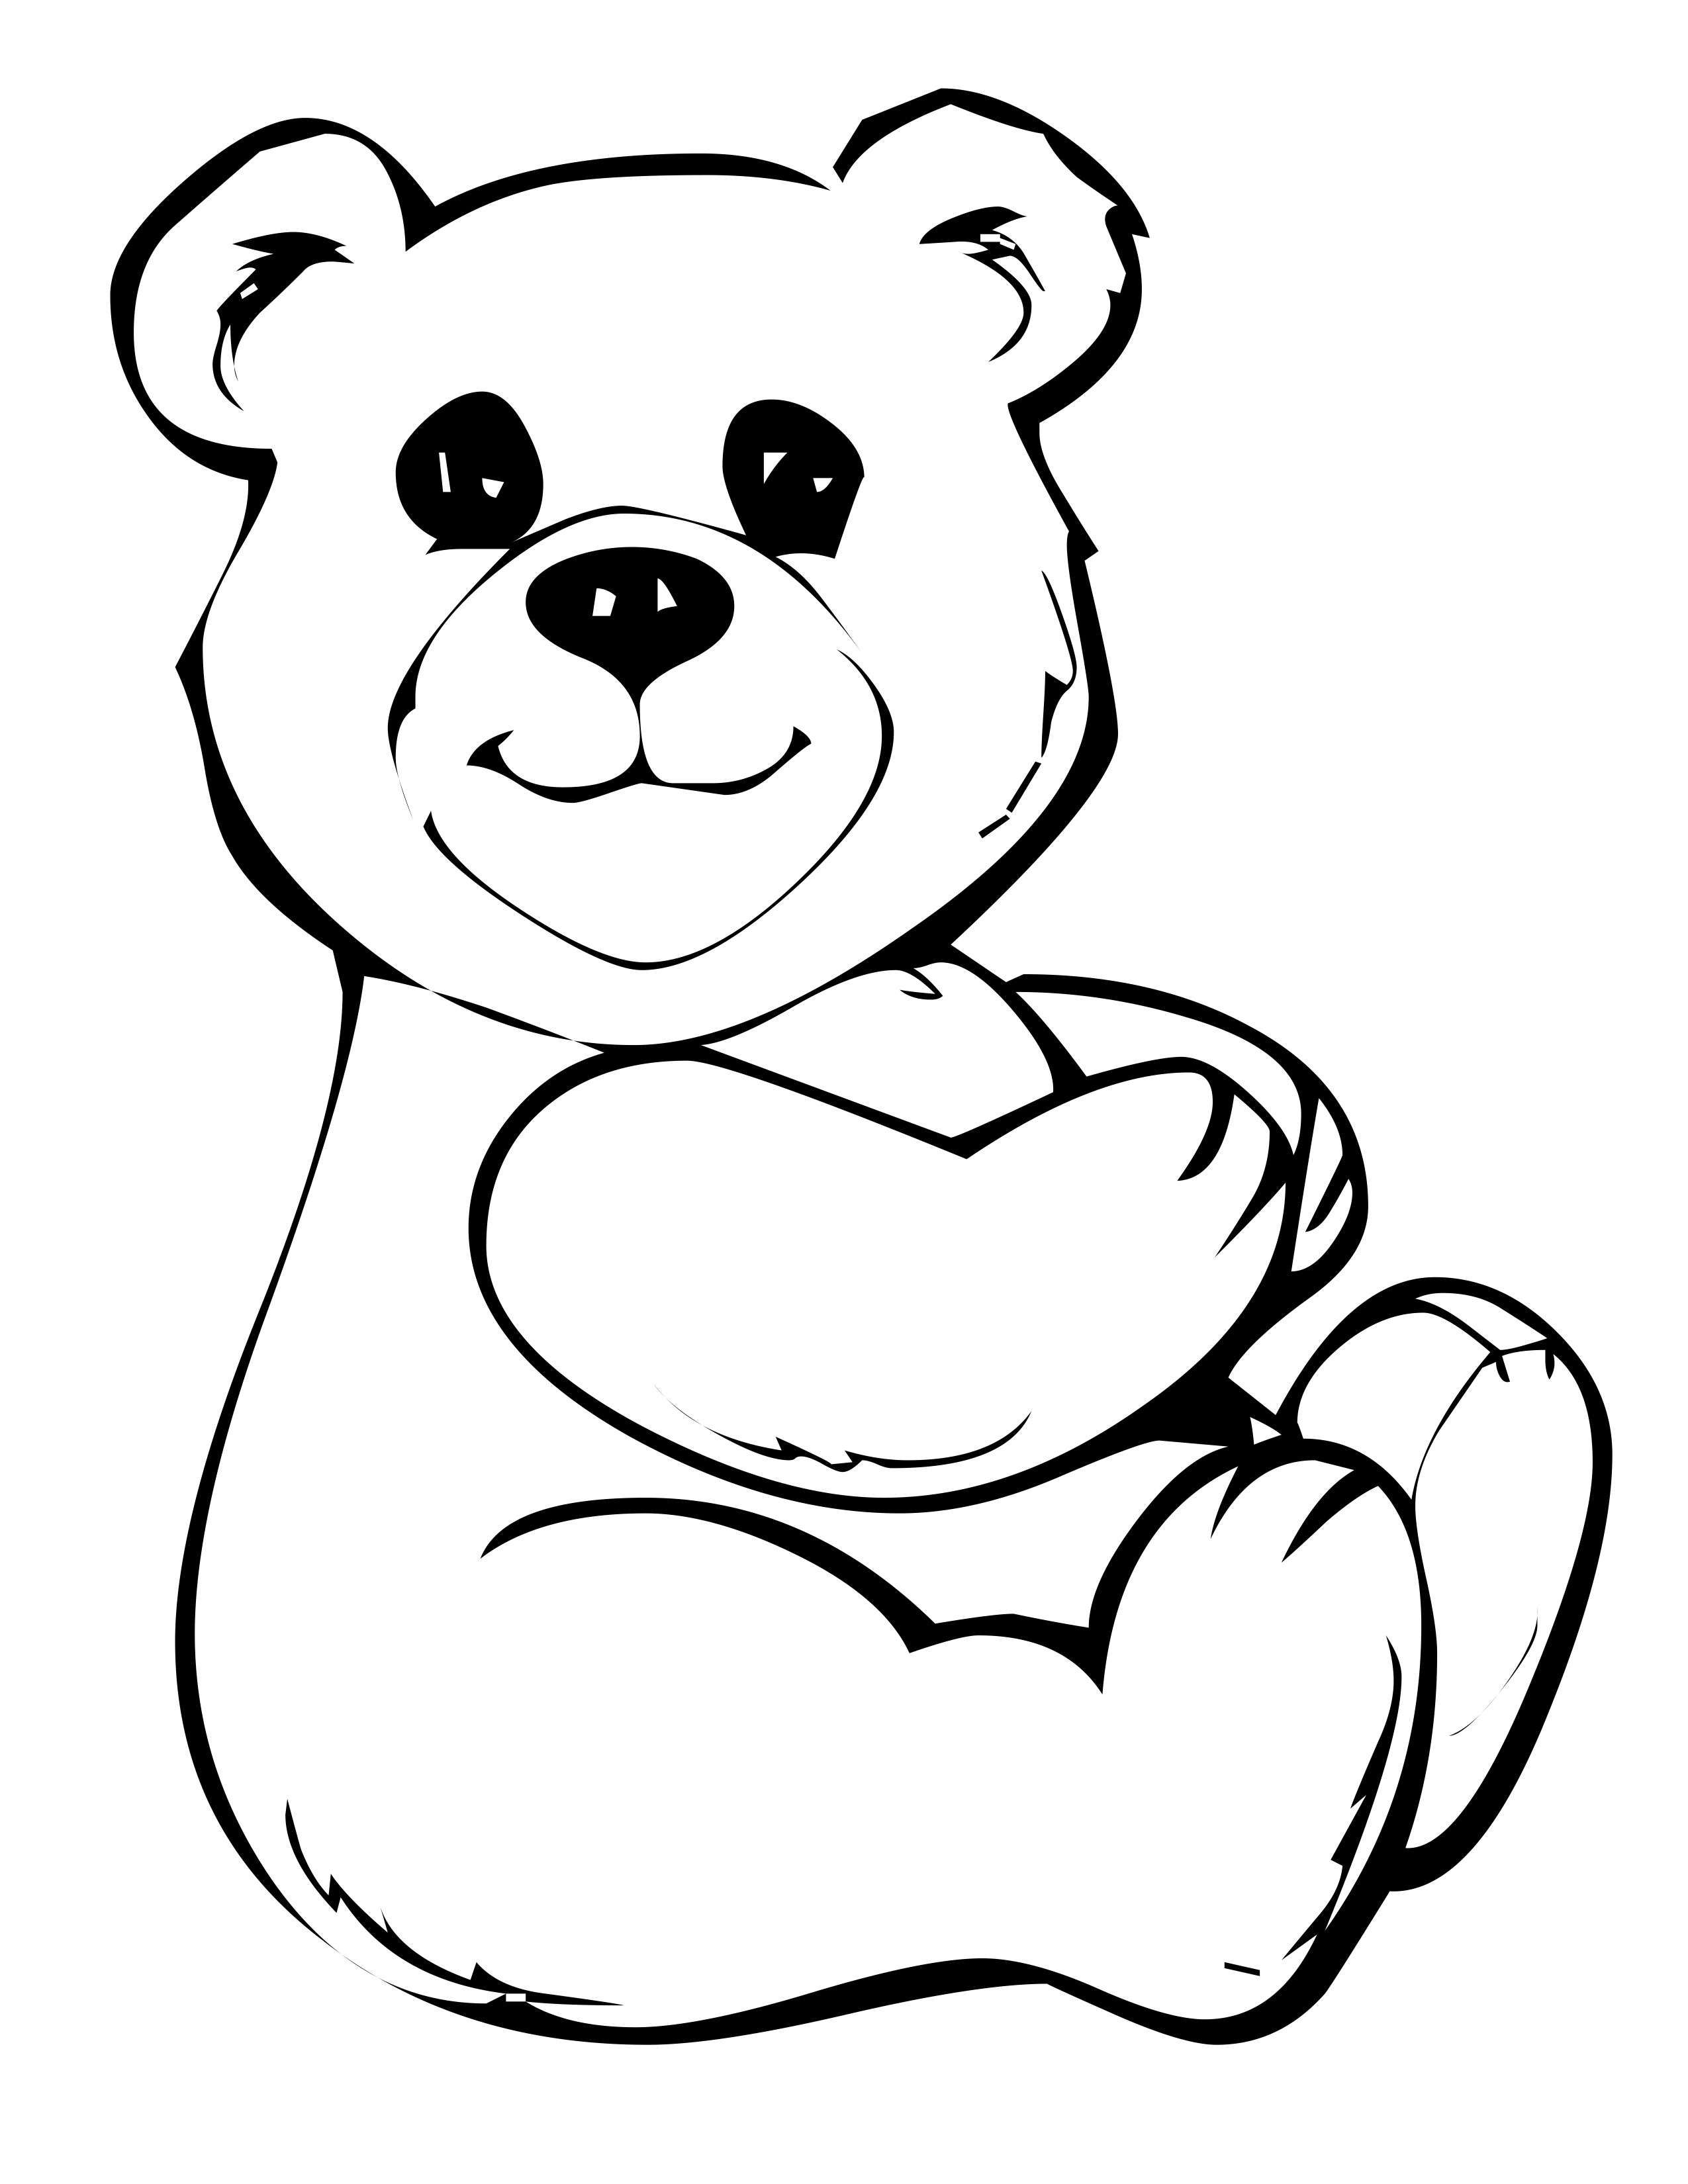 coloring pages of pandas free printable panda coloring pages for kids animal place pages pandas coloring of